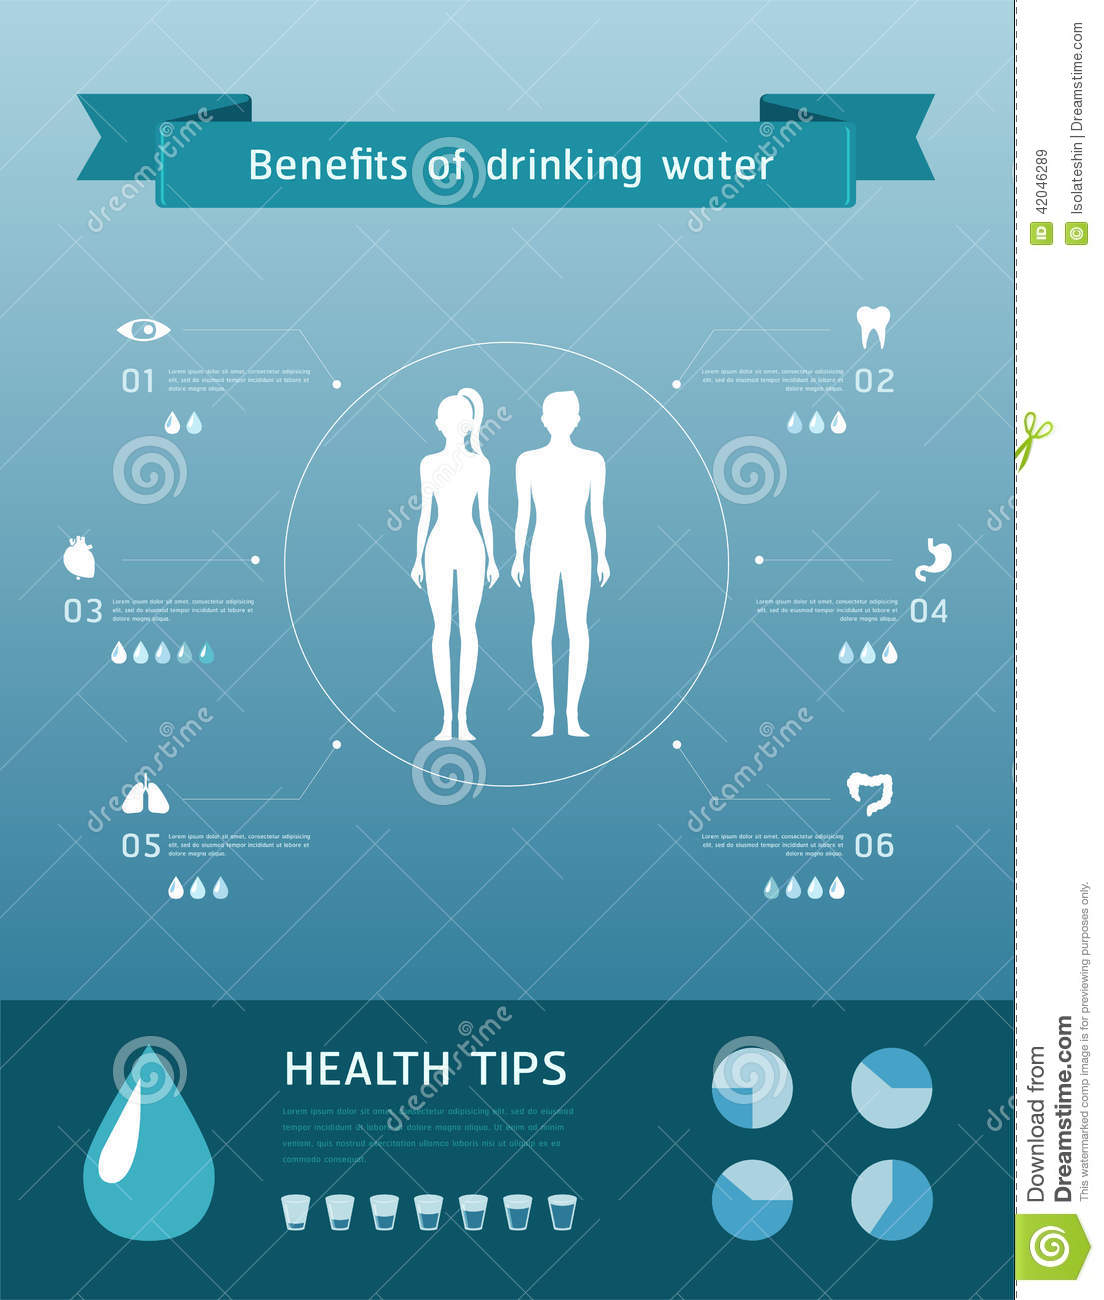 benefits of drinking water stock vector illustration of abstract